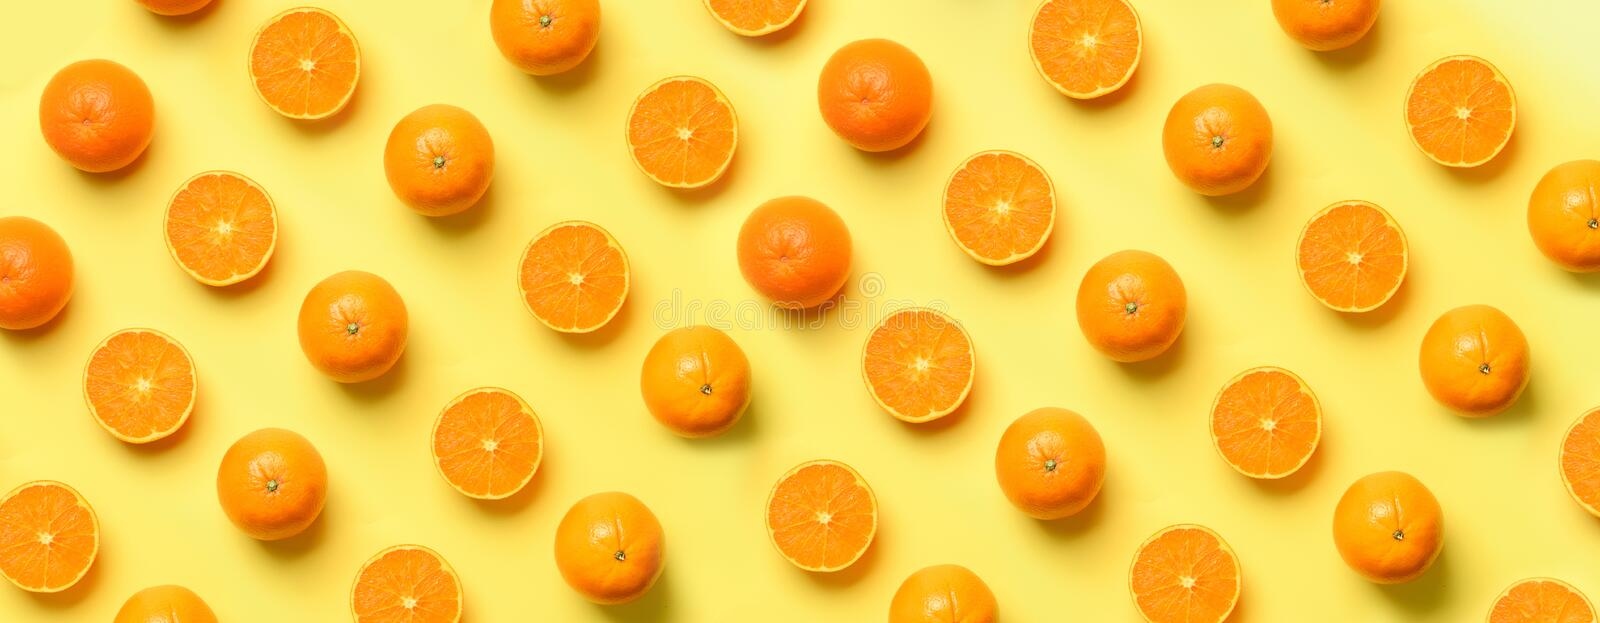 Fruit pattern of fresh orange slices on yellow background. Top view. Copy Space. Pop art design, creative summer concept. Half of. Citrus in minimal flat lay stock photography